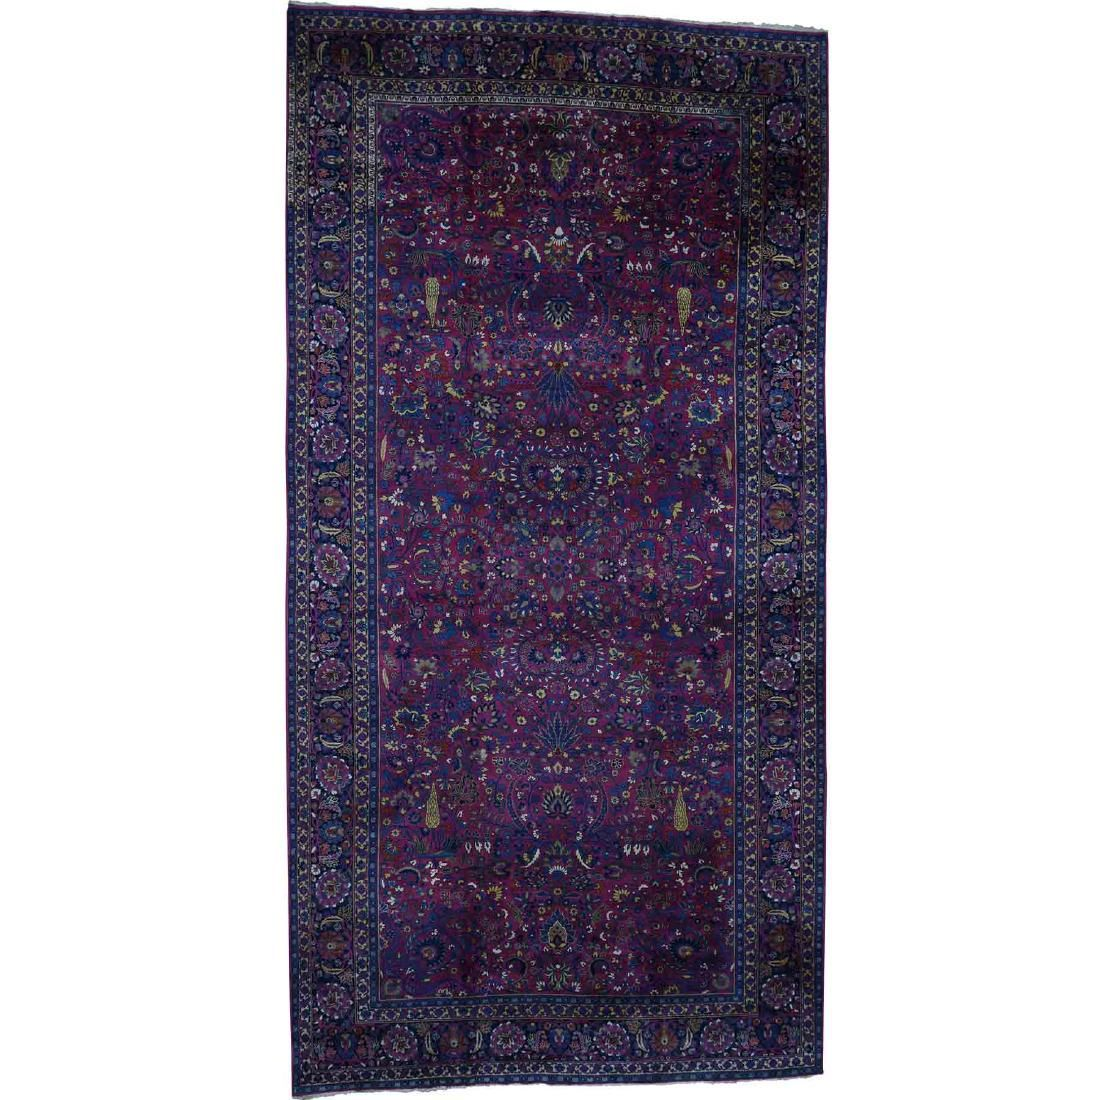 Antique Persian Mashad With Tree Design Hand-Knotted